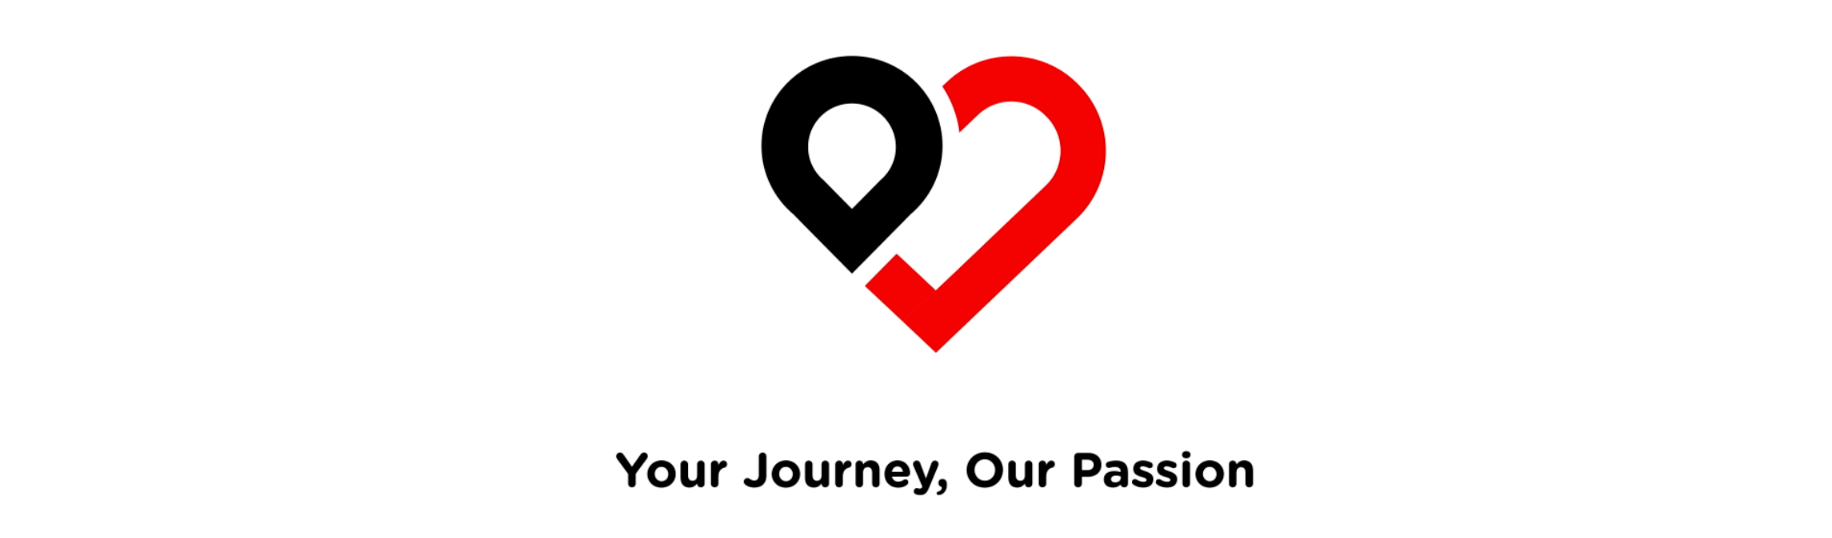 #YourJourneyOurPassion -  wide.png